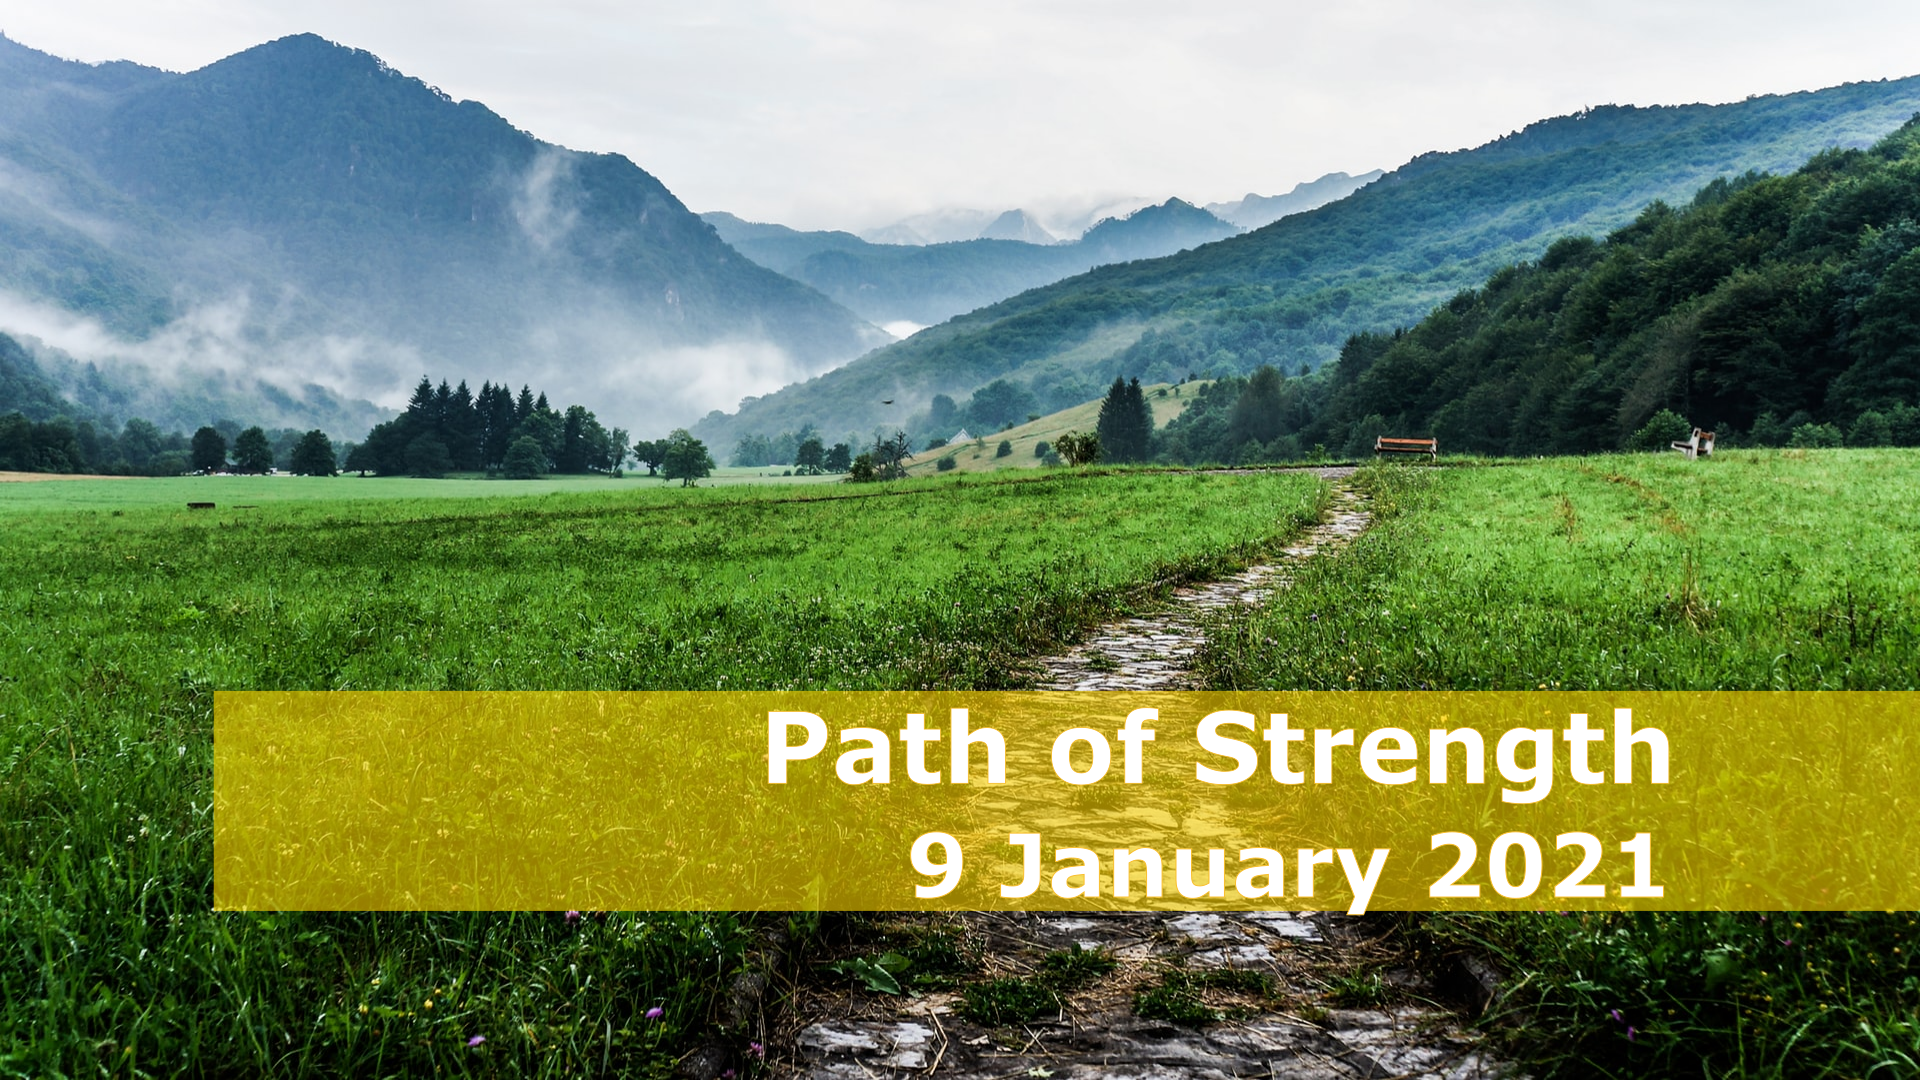 <span class='p-name'>Path of Strength — 9 January 2021 Devotional</span>